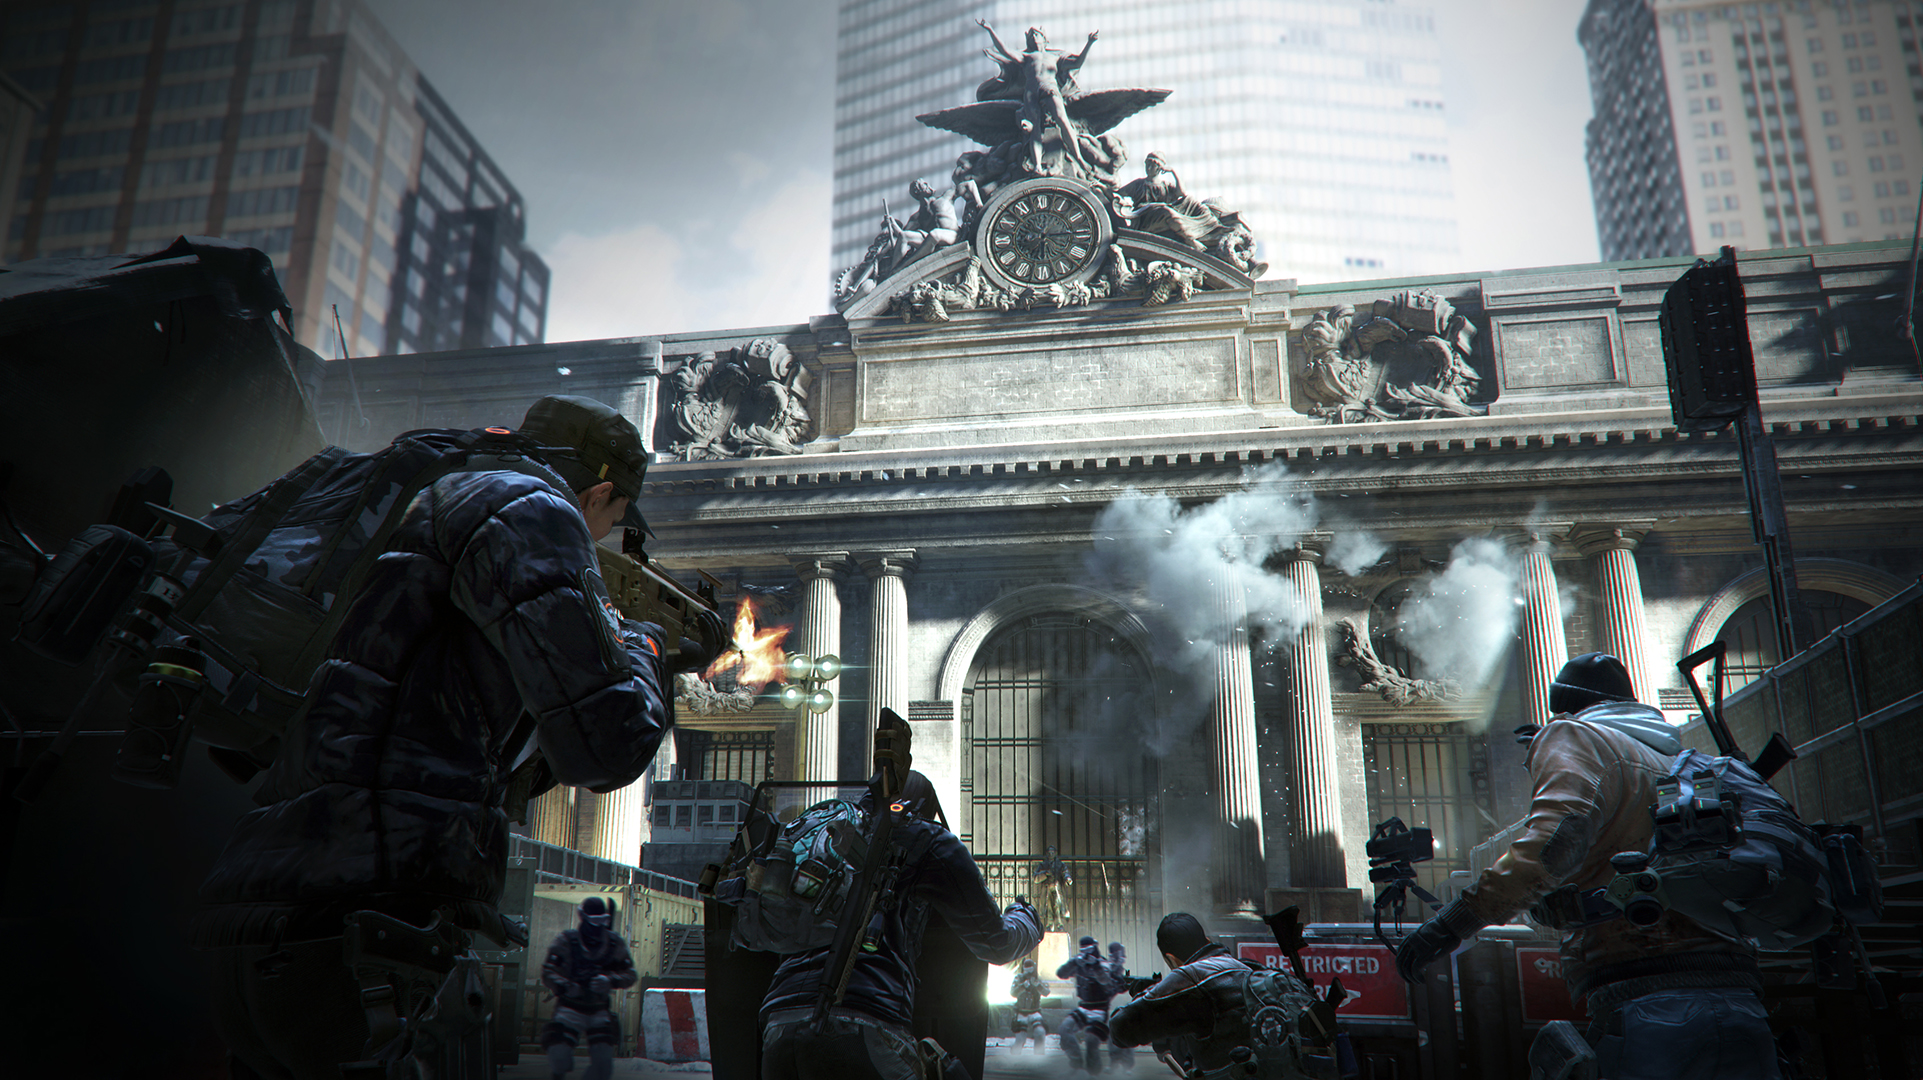 2991543 tctd screenshot grand central embargo 011516 7ampt The Division DLC Delayed By Ubisoft For A Pretty Good Reason